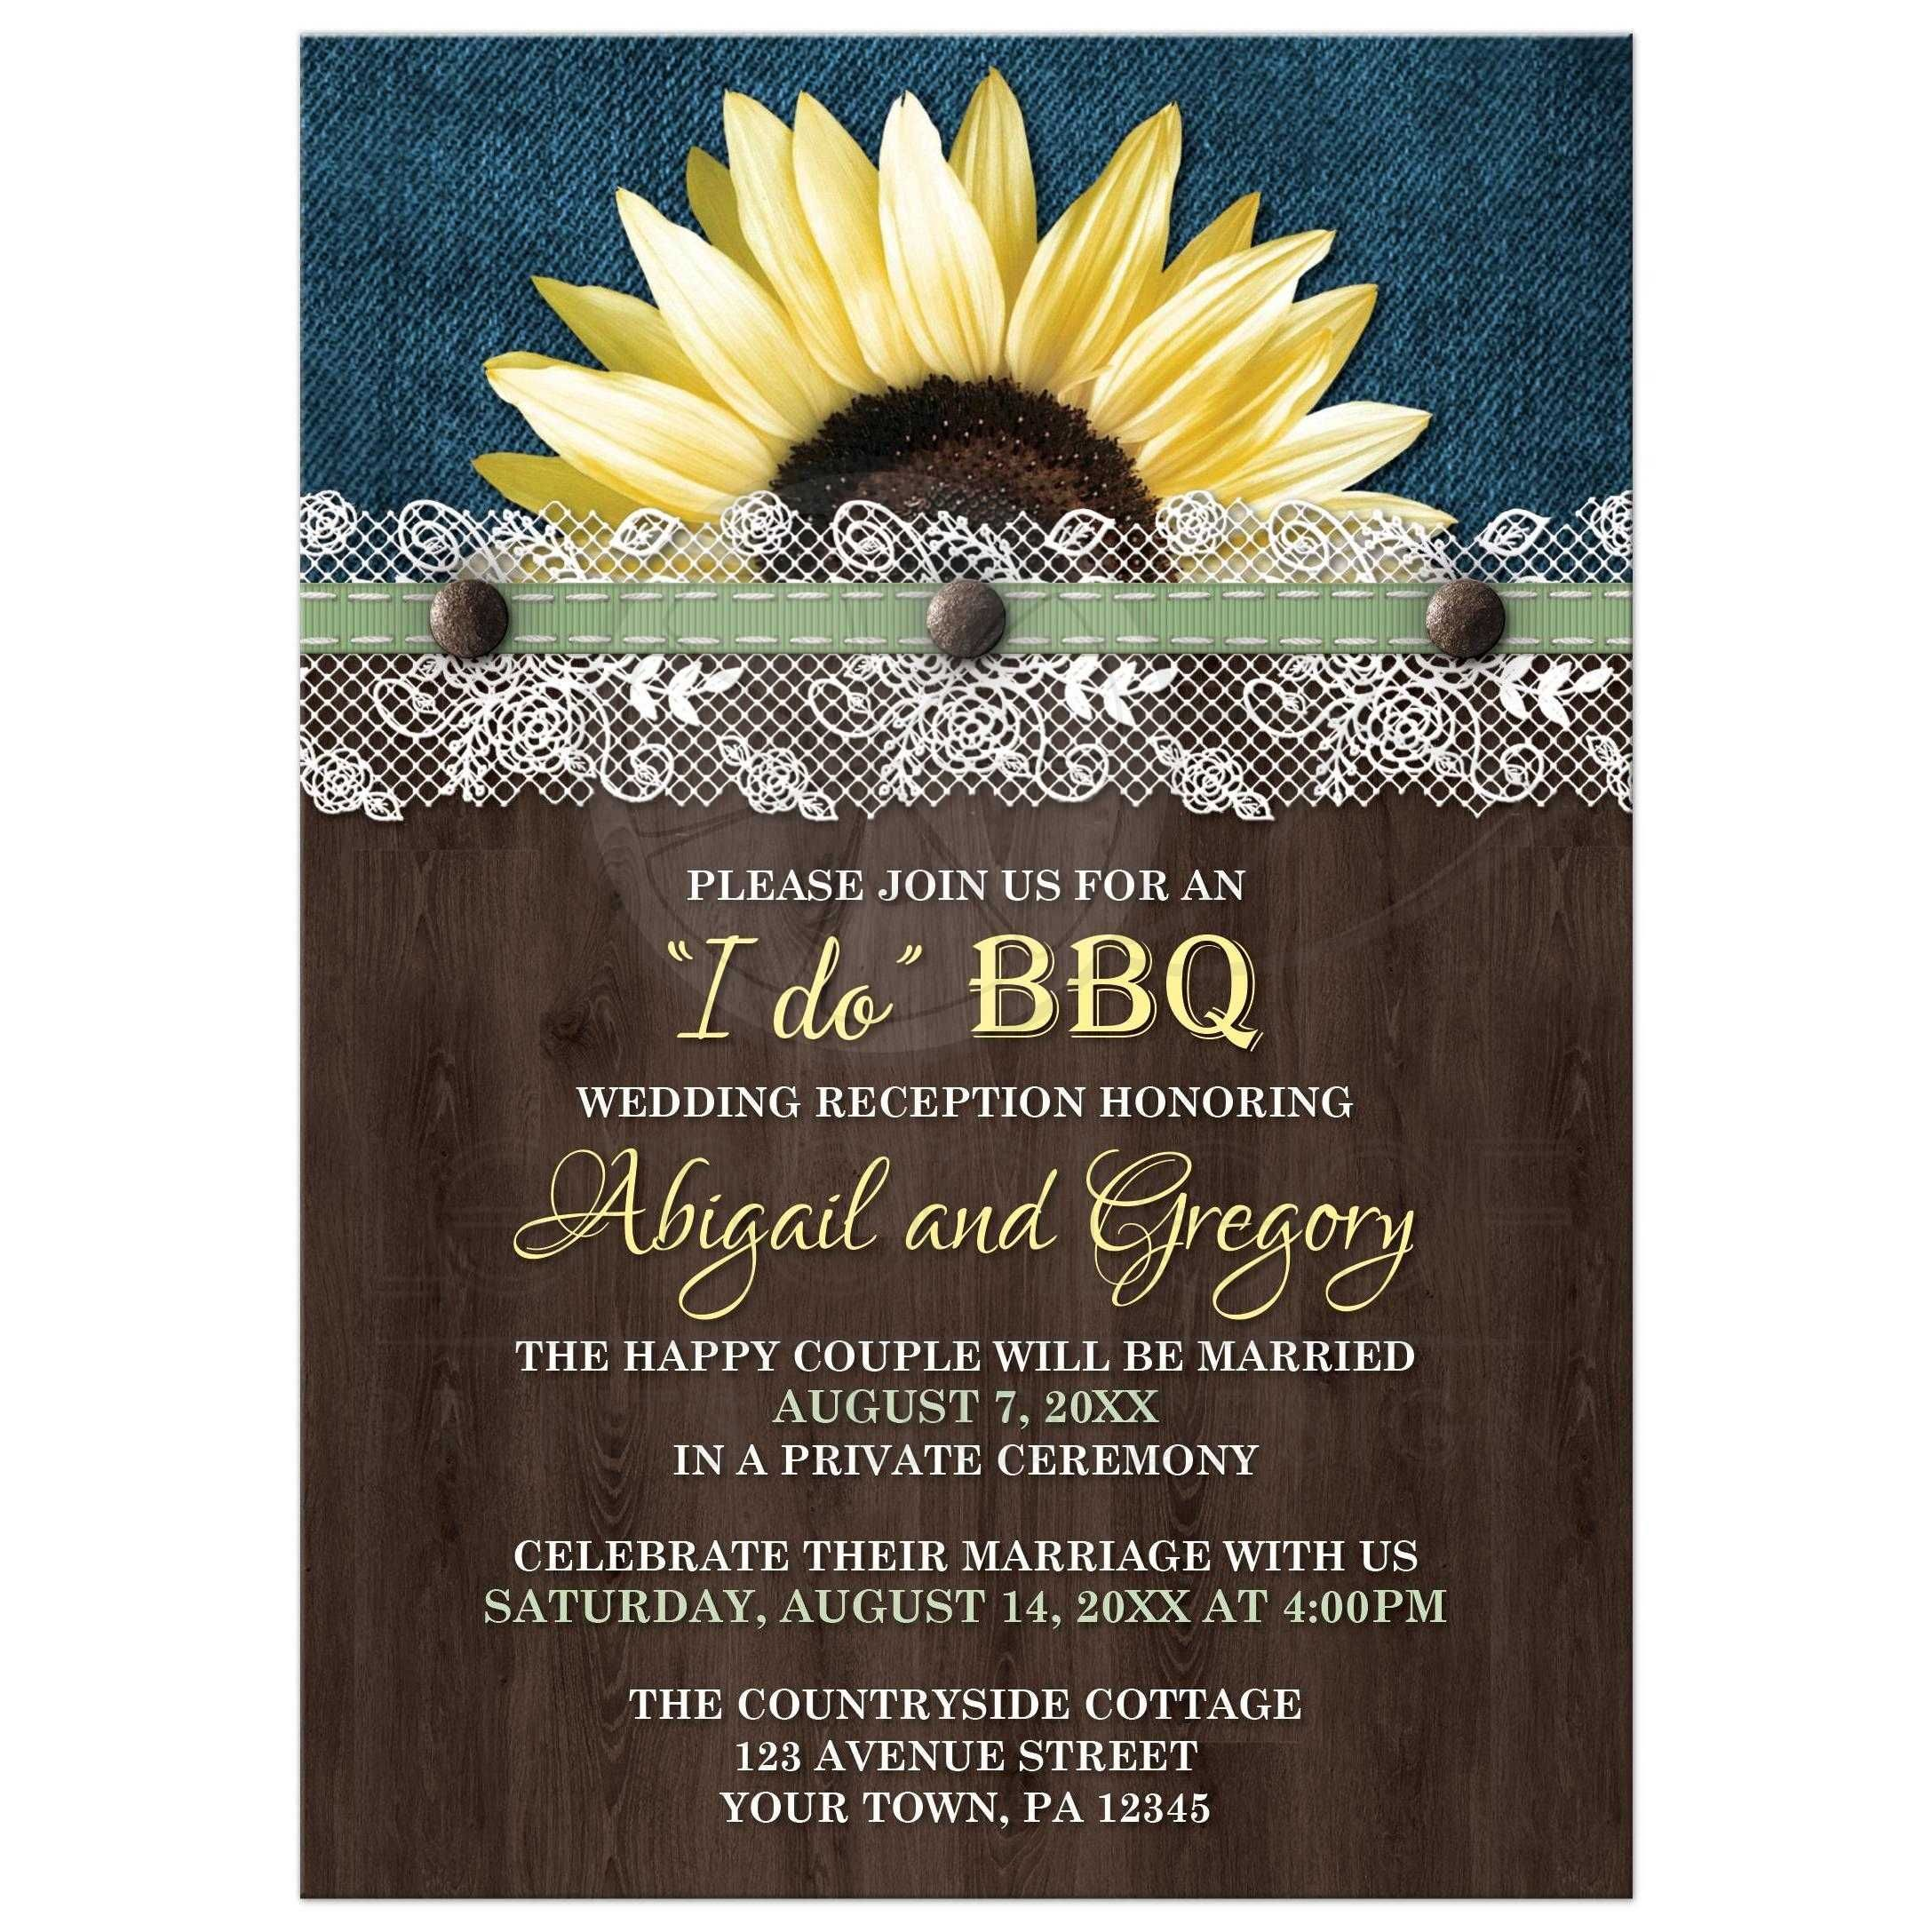 Try This BBQ Wedding Party Inspiration 100 Ideas (With